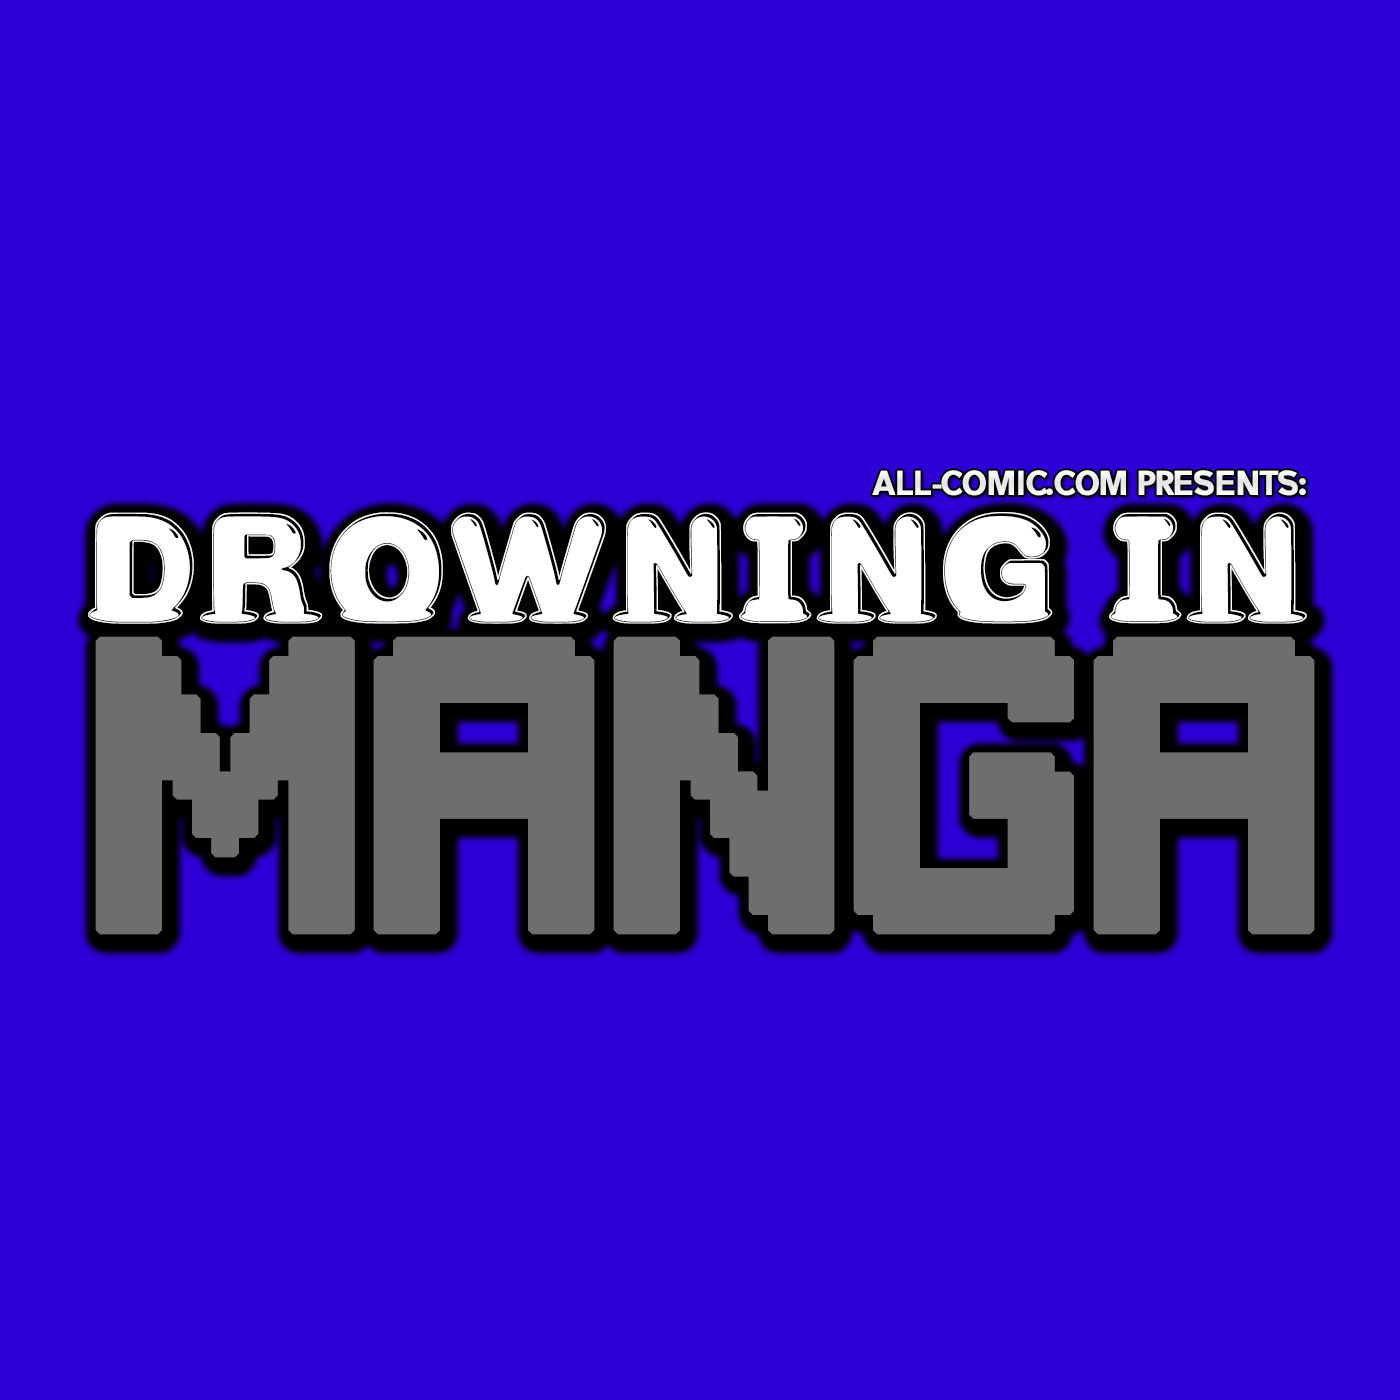 Drowning in Manga